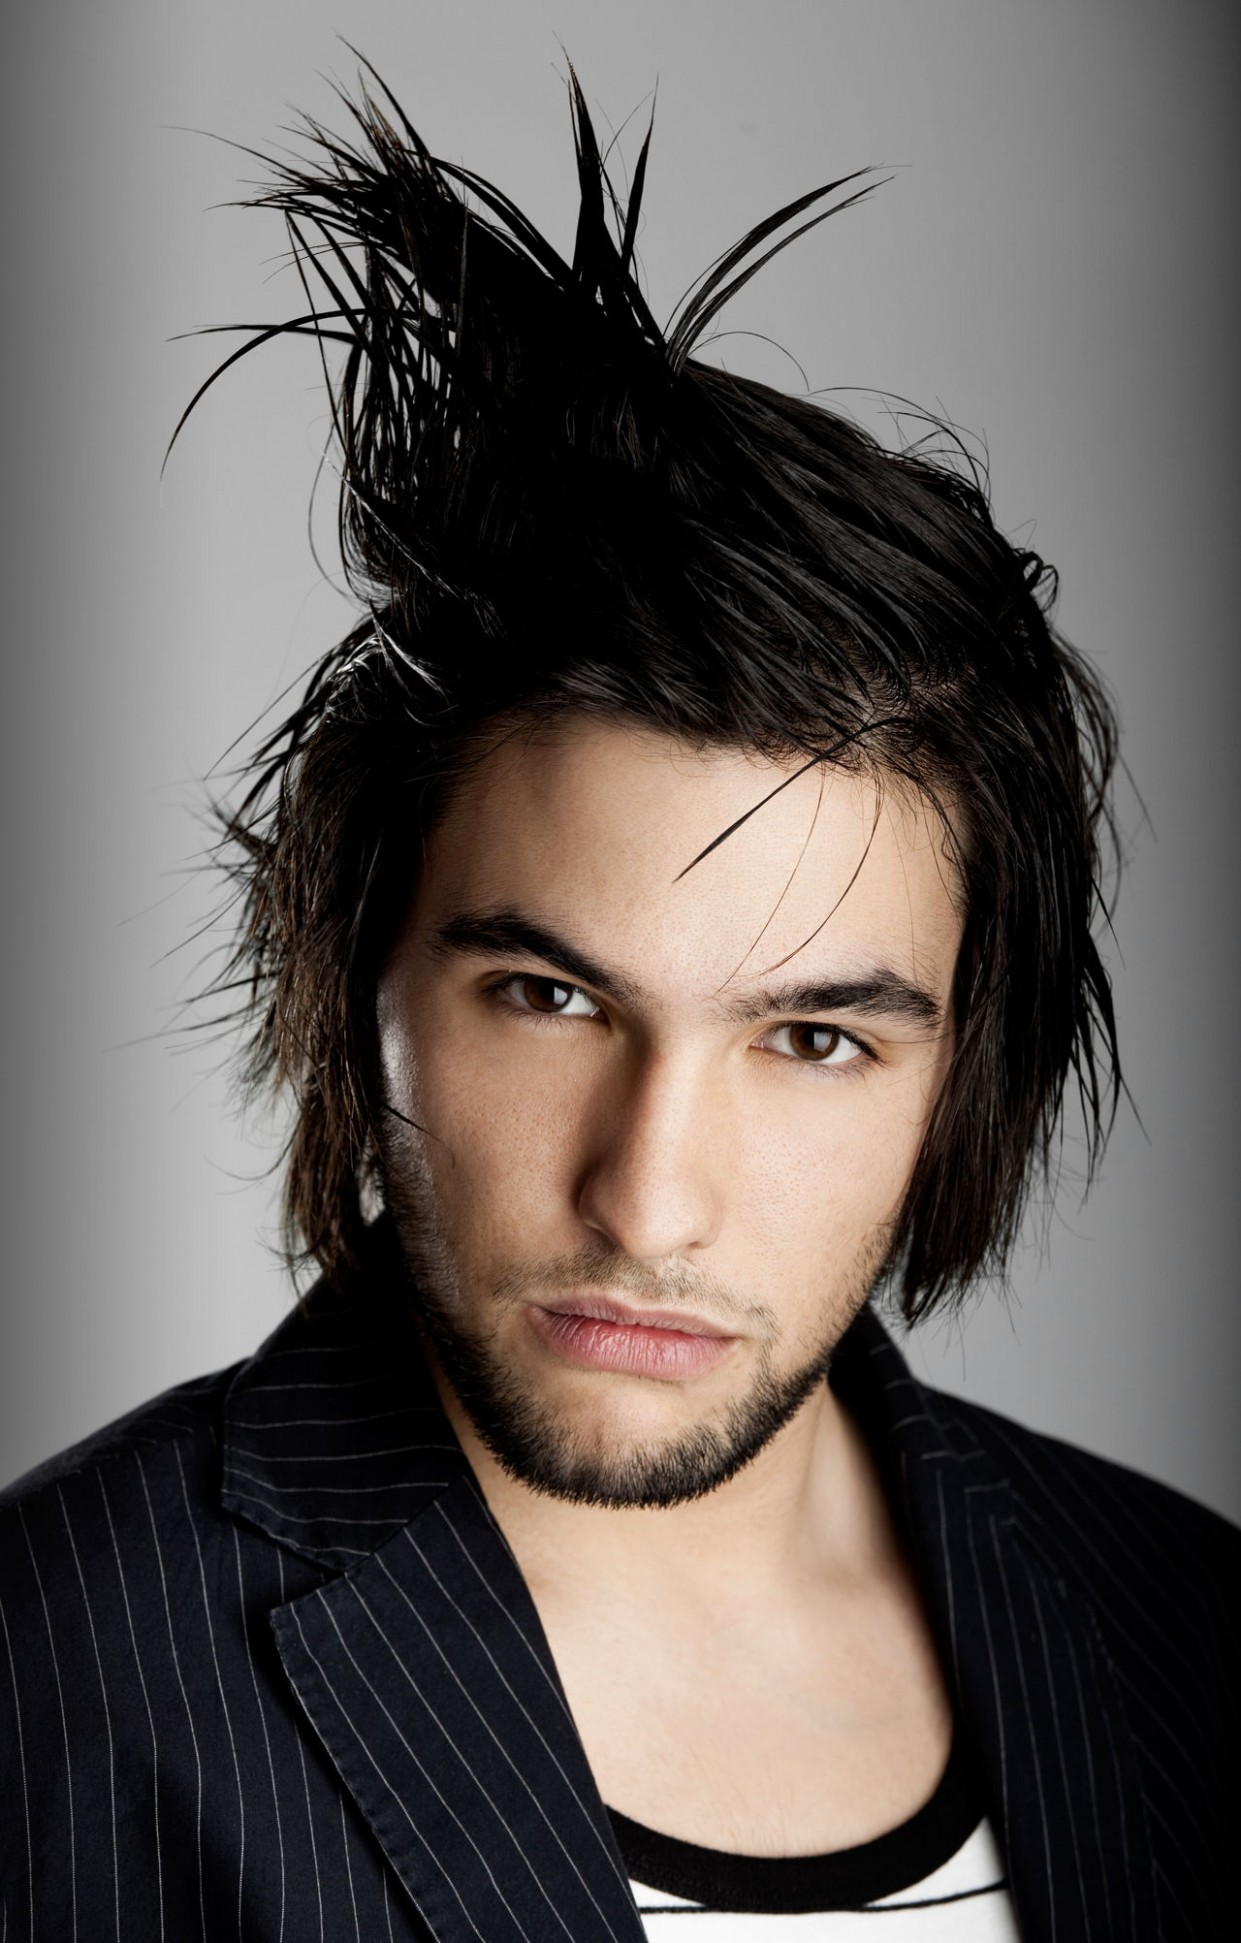 12 Cool Ways to Spike Your Hair - Men Wit